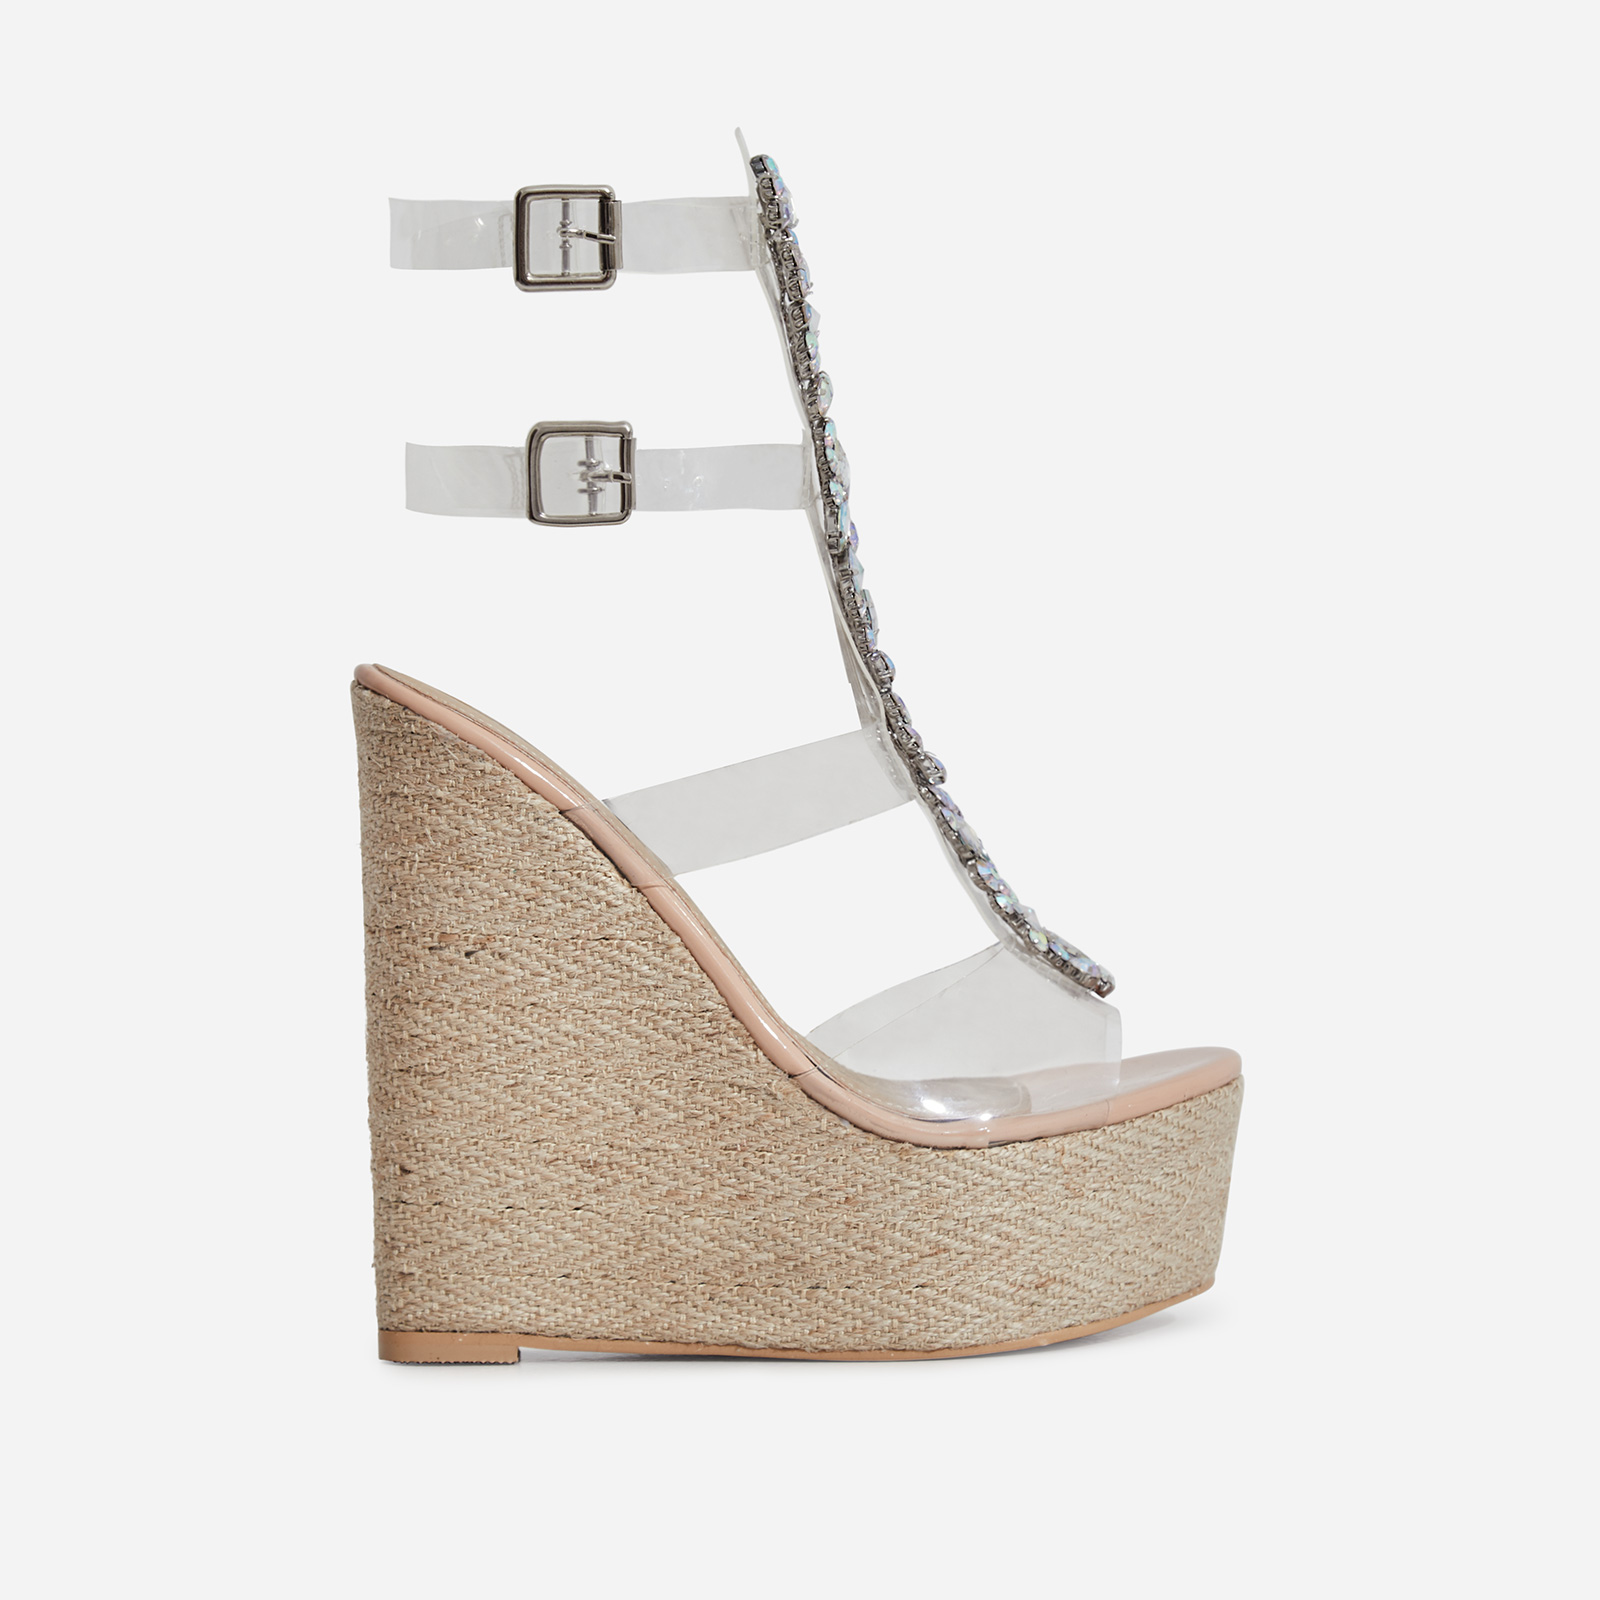 Heir Jewel Embellished Perspex Platform Espadrille Wedge Heel In Nude Patent